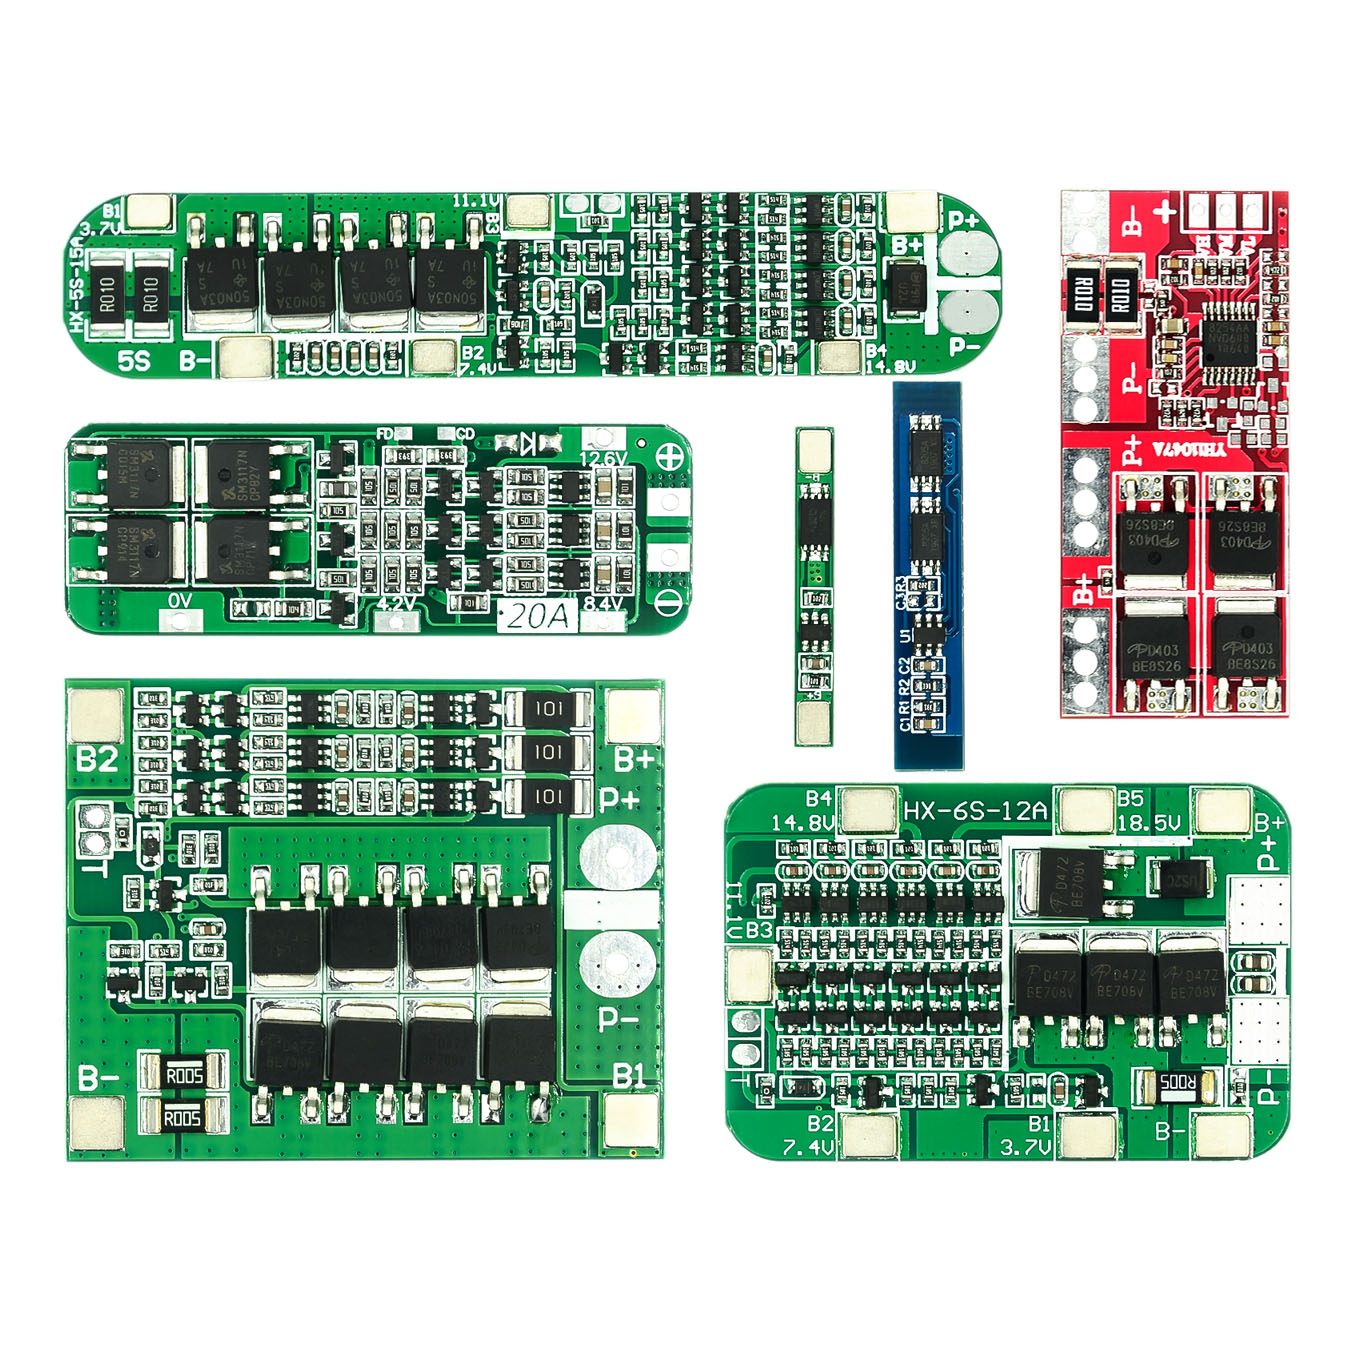 1S 2S 3S 4S 3A 20A 30A Li-ion Lithium Battery 18650 Charger PCB BMS Protection Board For Drill Motor Lipo Cell Module 5S 6S(China)